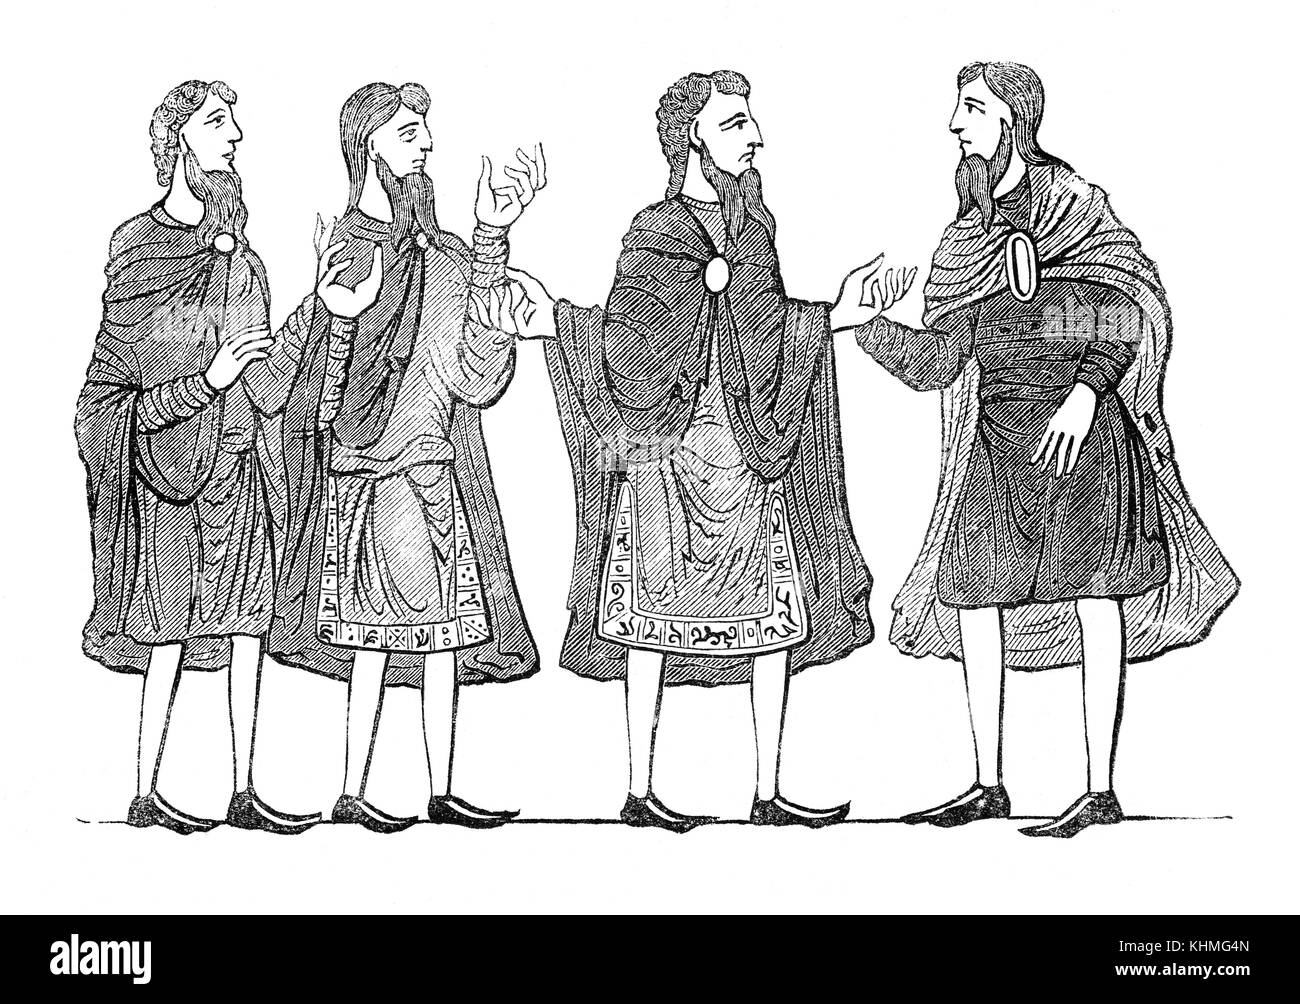 Cloaks, tunics and shoes that make up everyday Saxon  attire in 9th Century England. - Stock Image